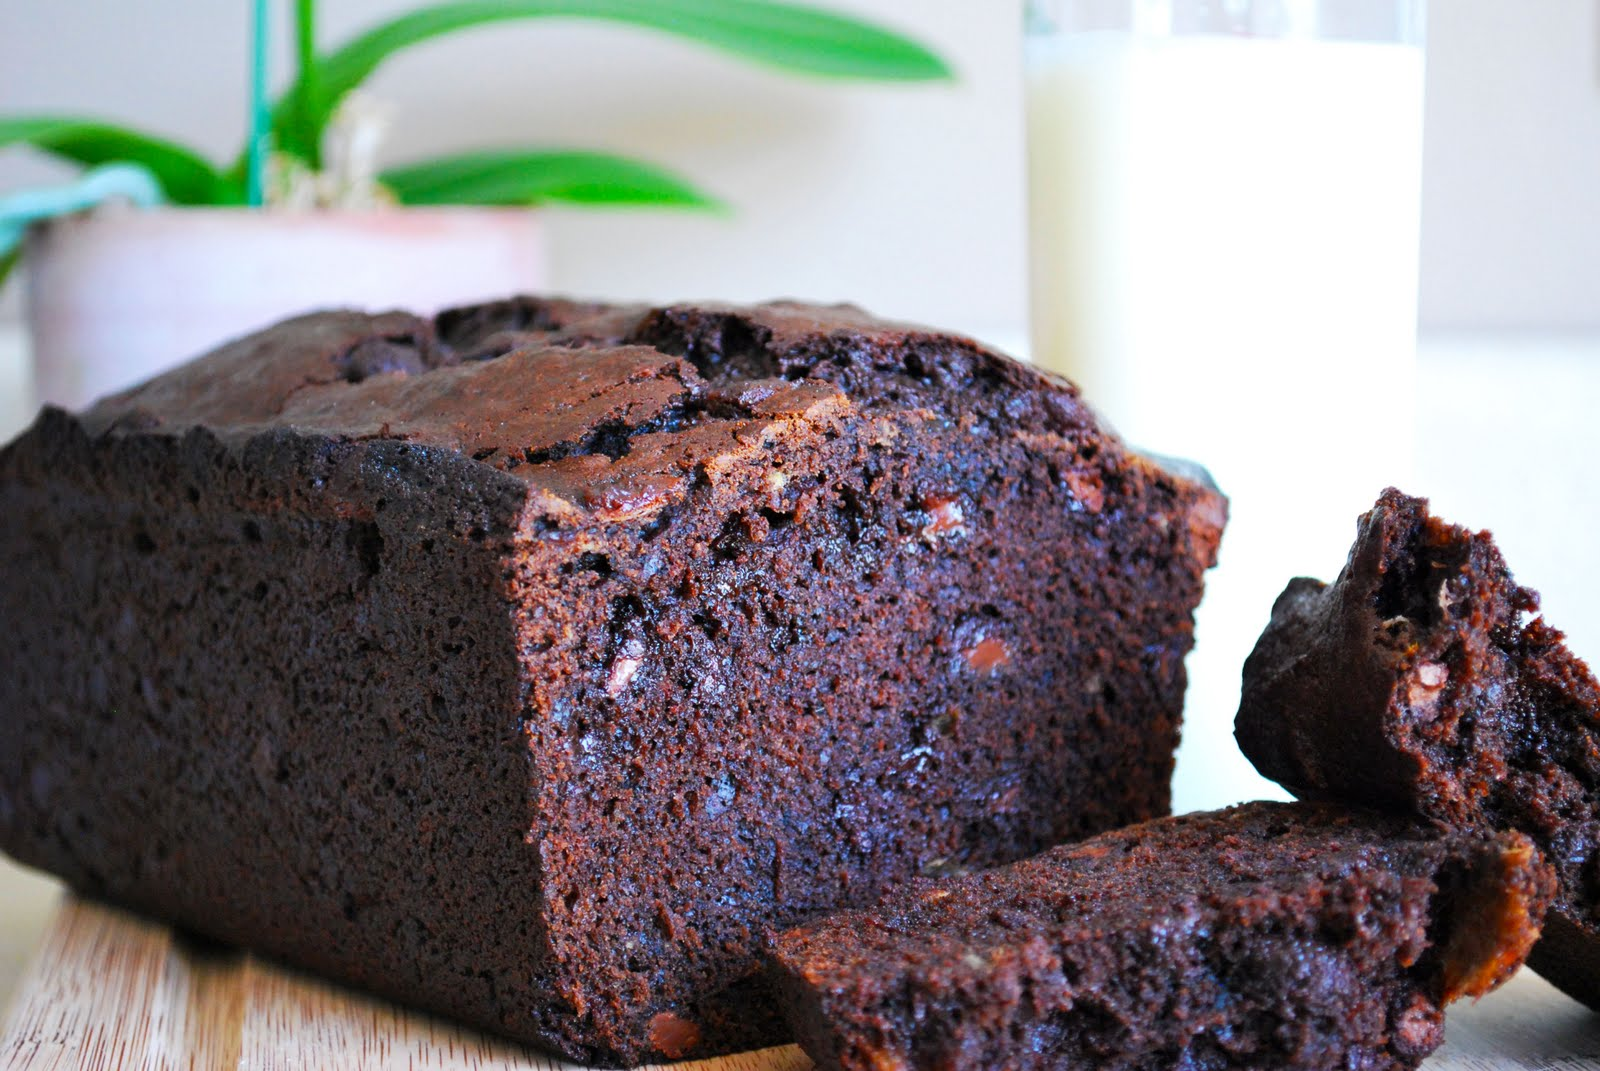 Chocolate Banana Bread for National Banana Bread Day!